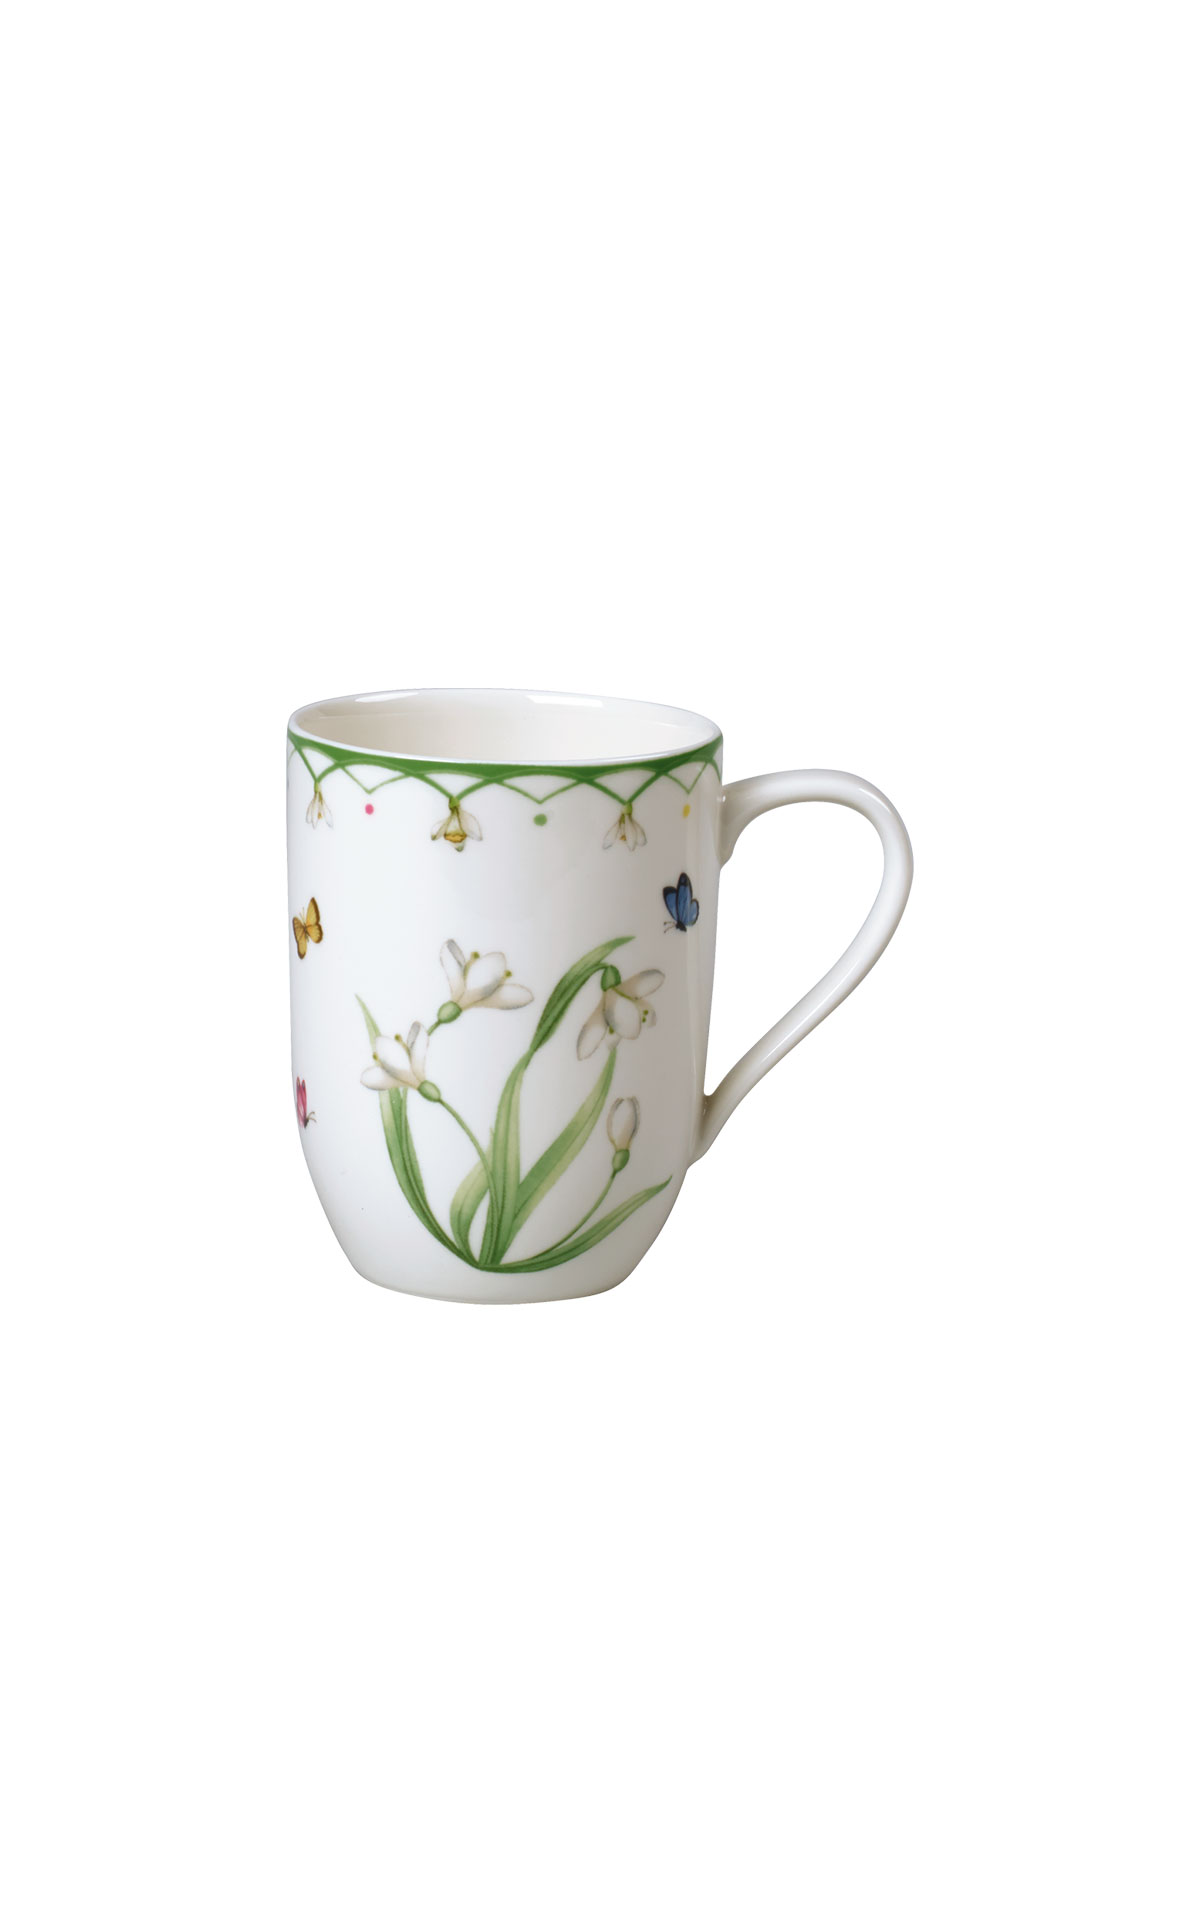 Villeroy and Boch Colourful spring mug  from Bicester Village